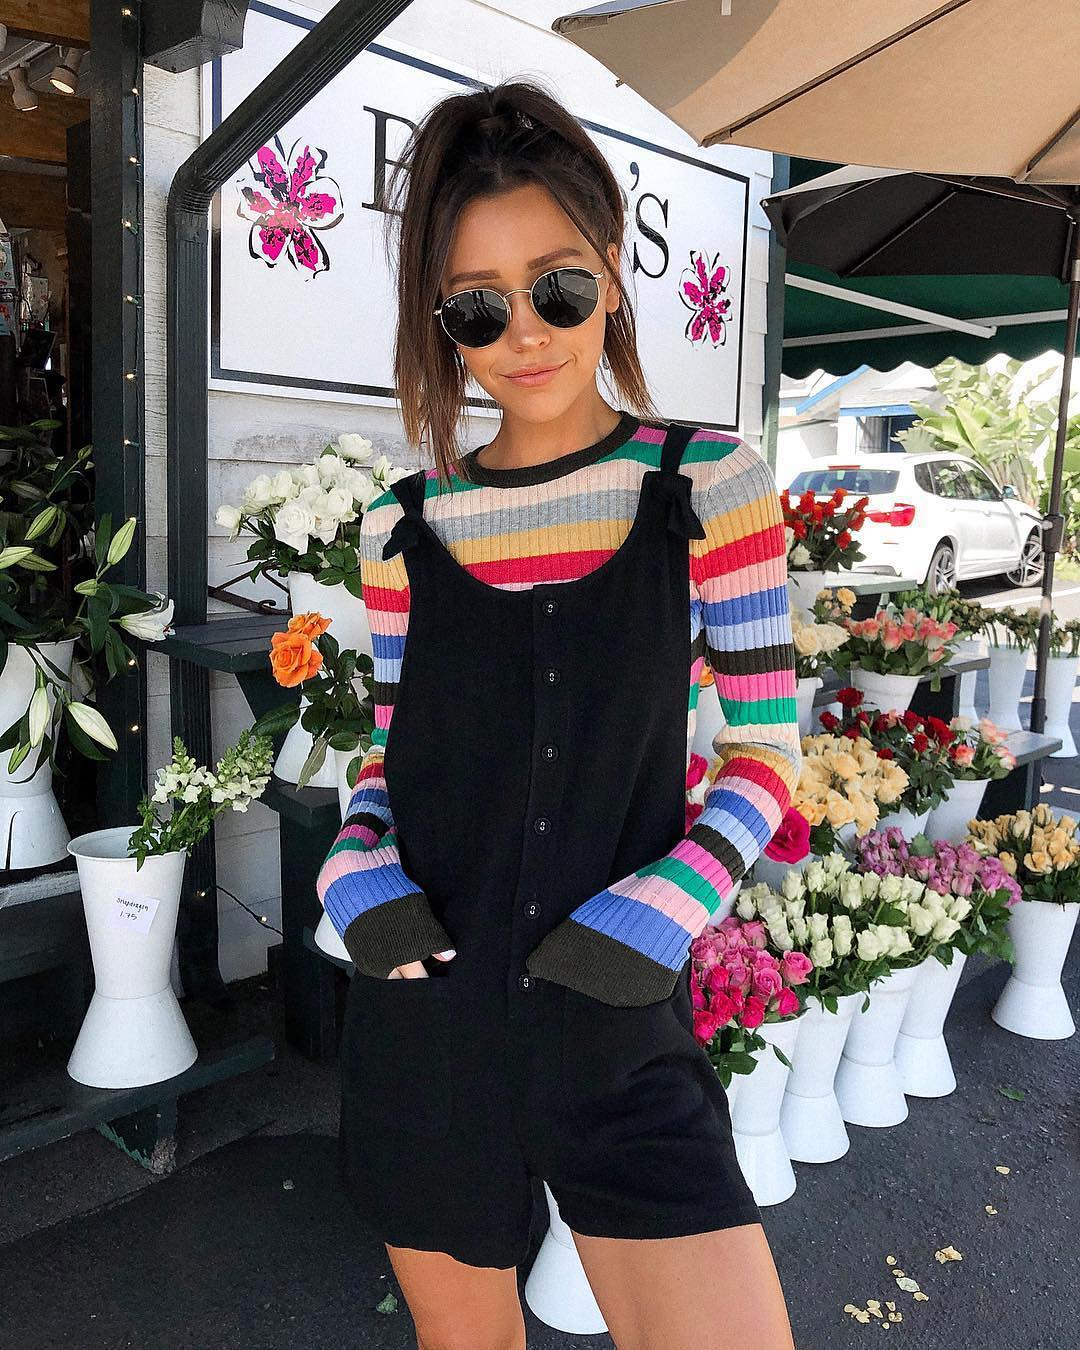 Can I wear a striped rainbow top with a black romper this summer 2021?